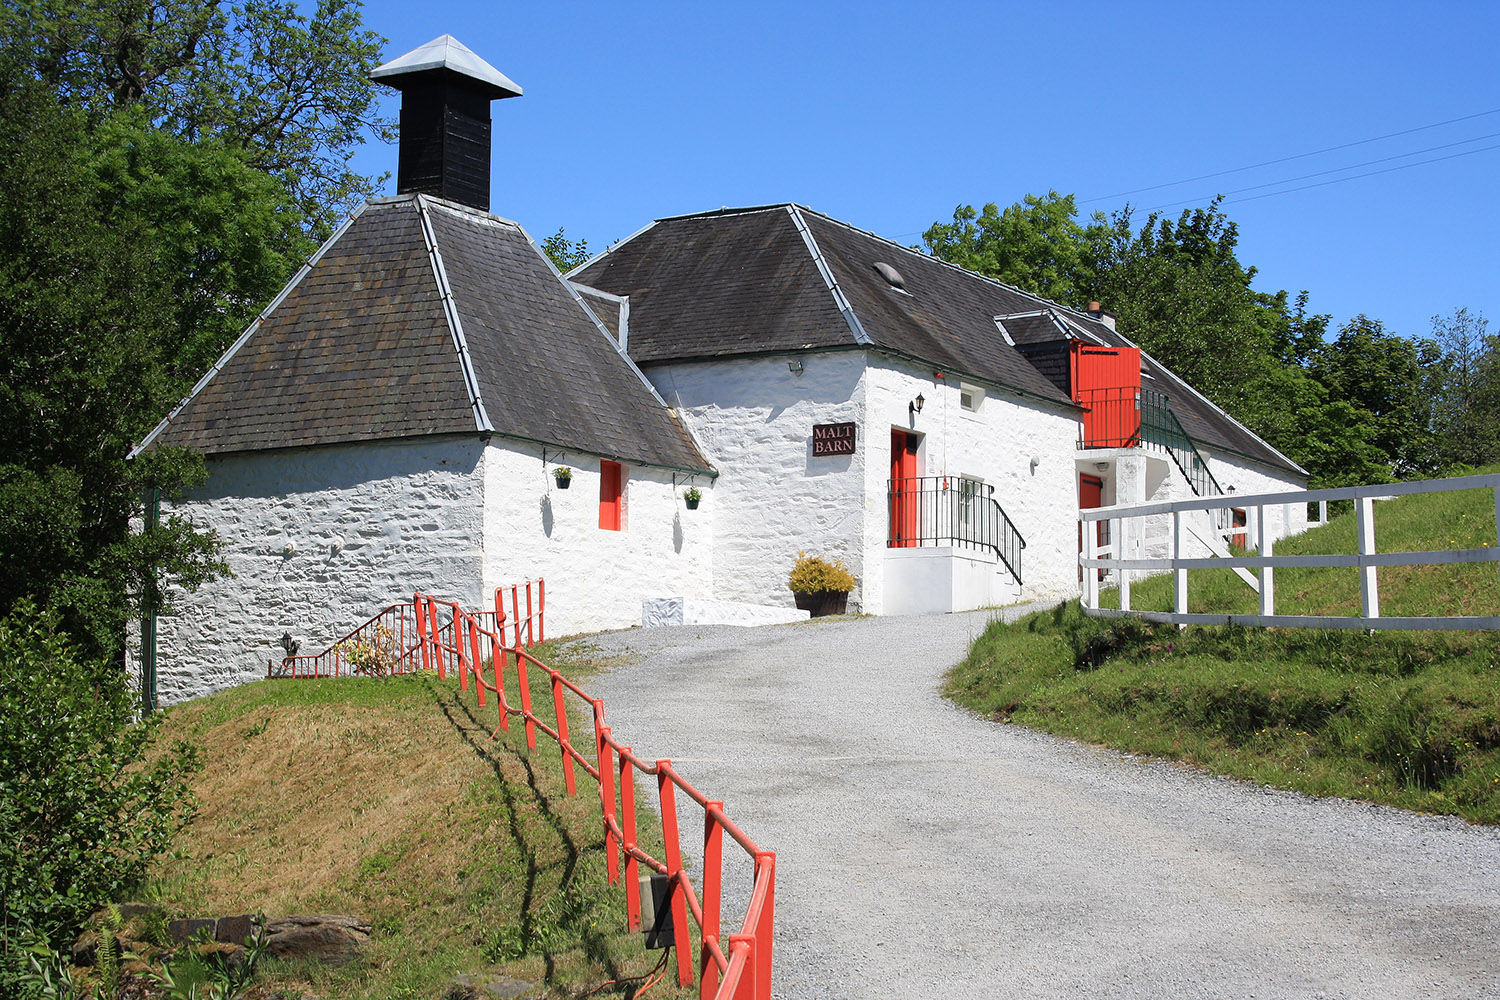 A whisky distillery in the highlands, available to visit on a private tour of Scotland